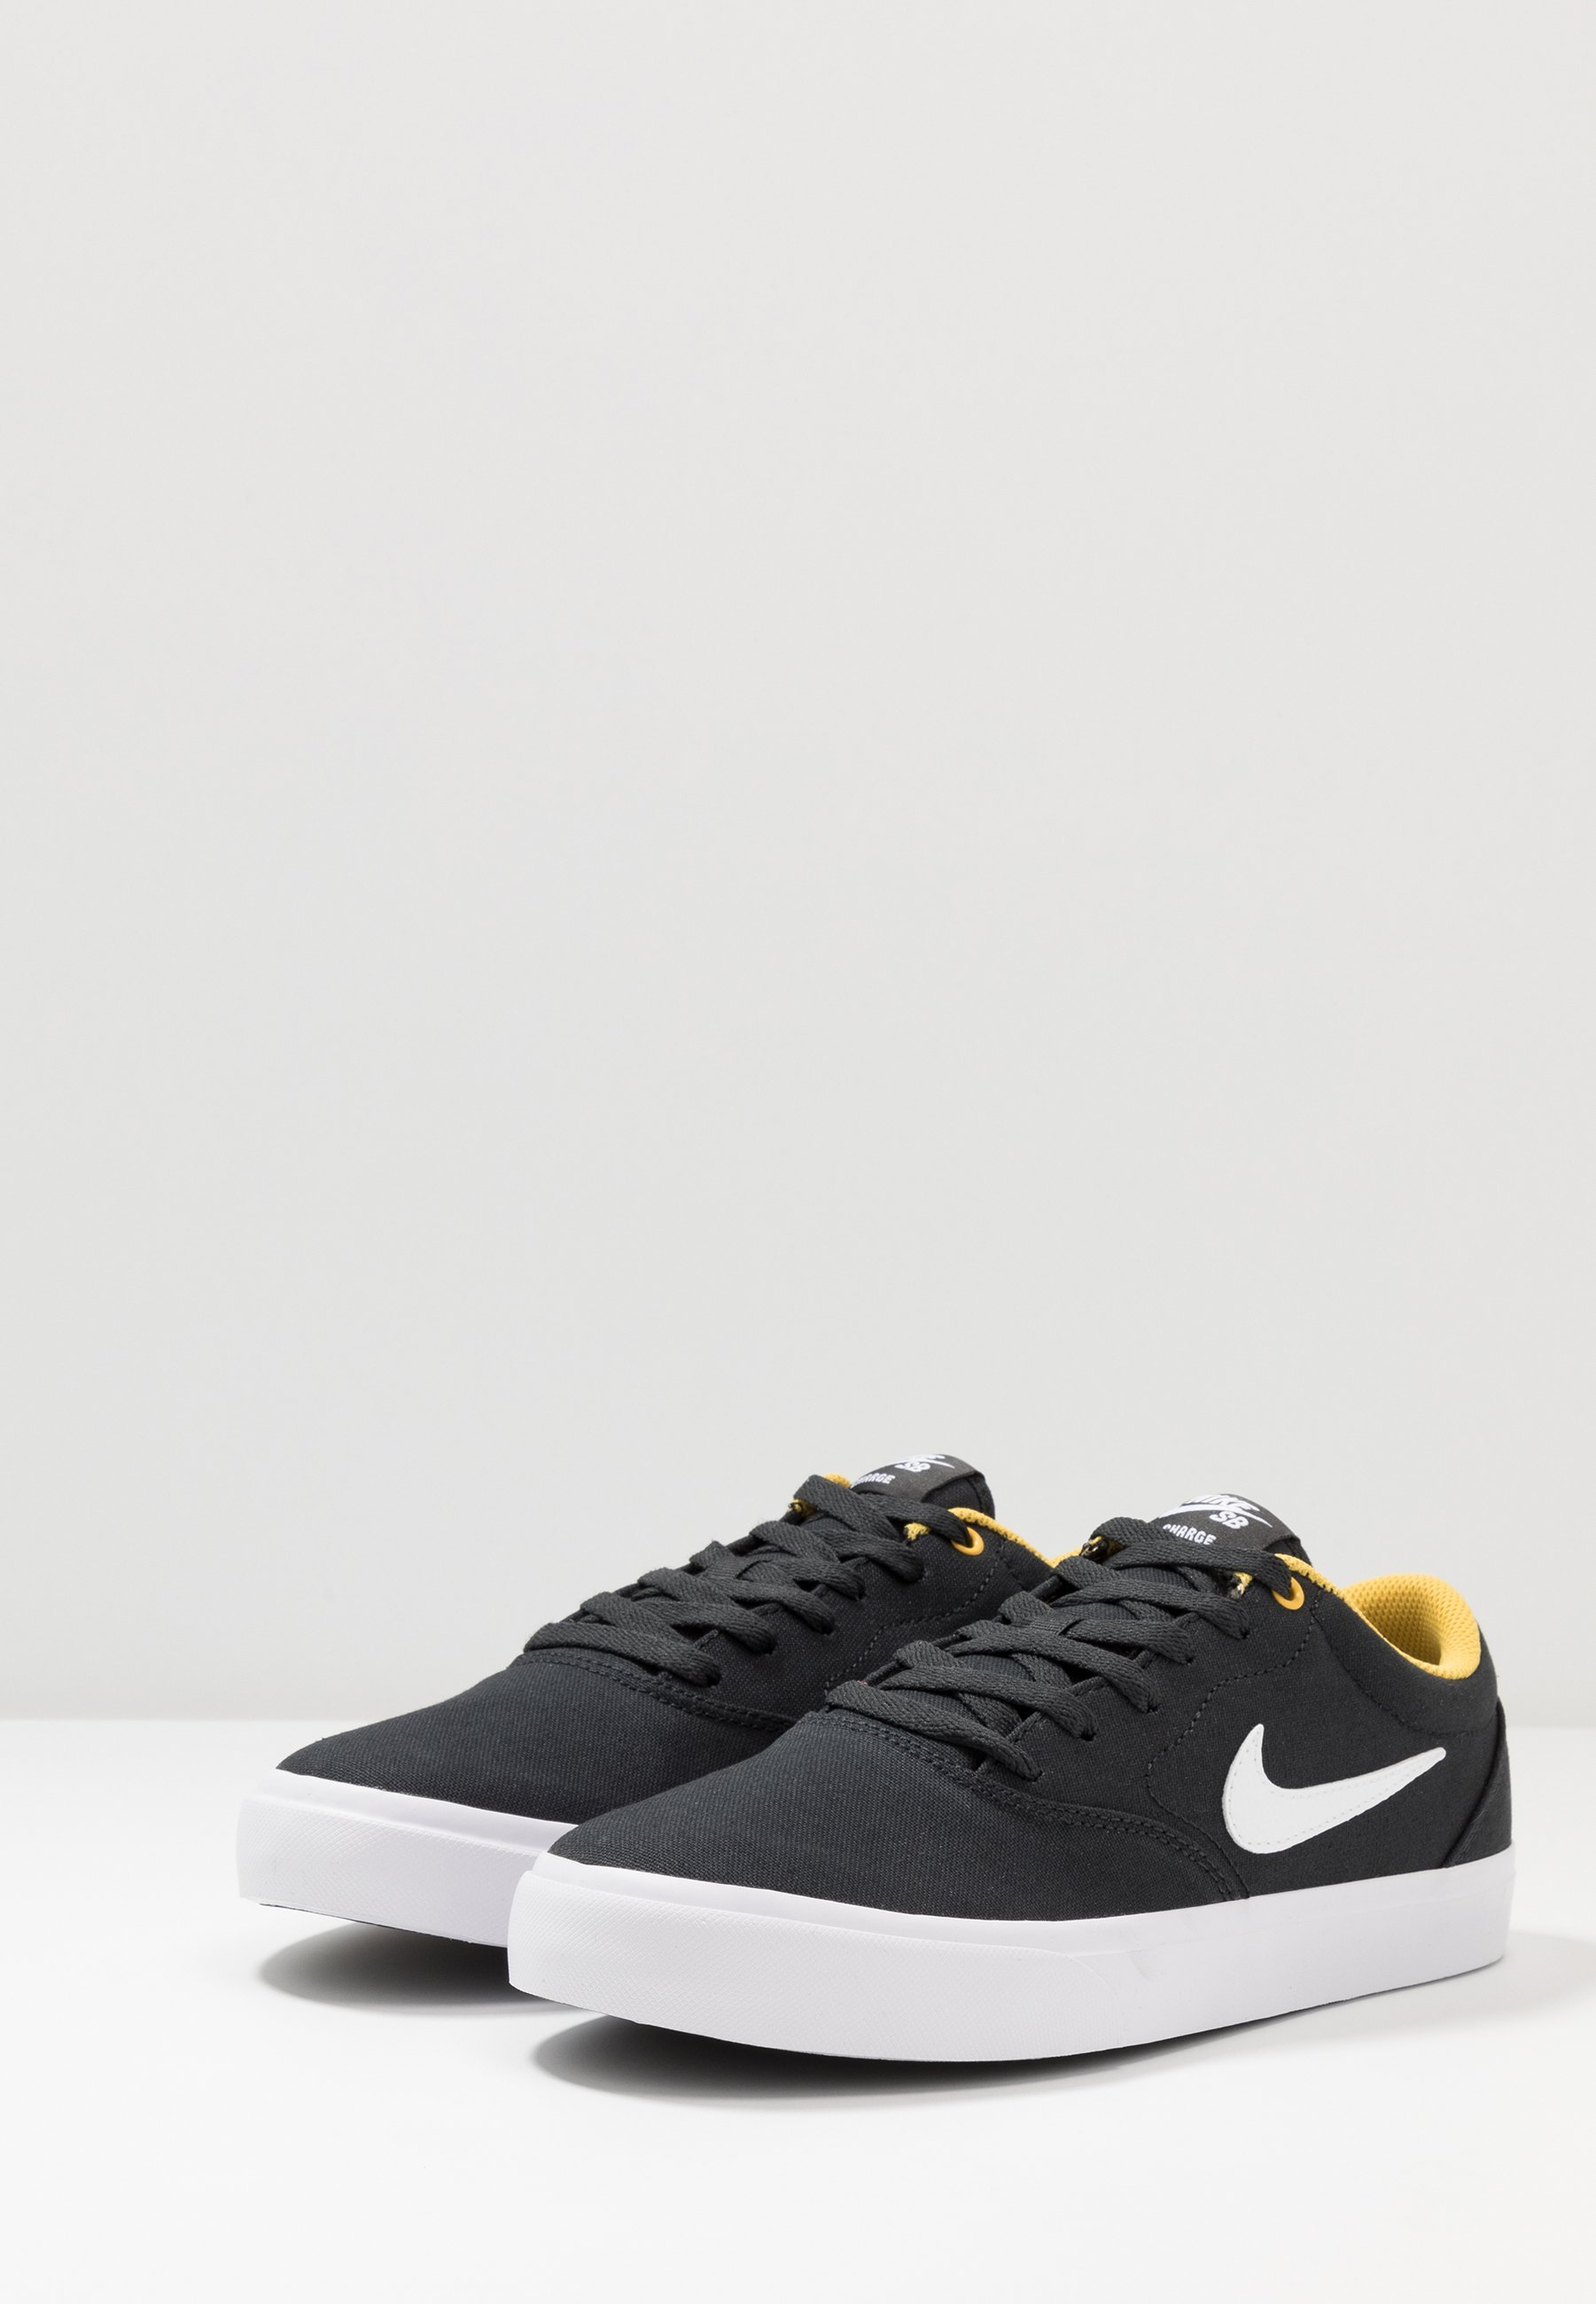 Nike SB CHARGE - Sneaker low - off noir/white/solar flare/black/schwarz - Herrenschuhe NwJOF